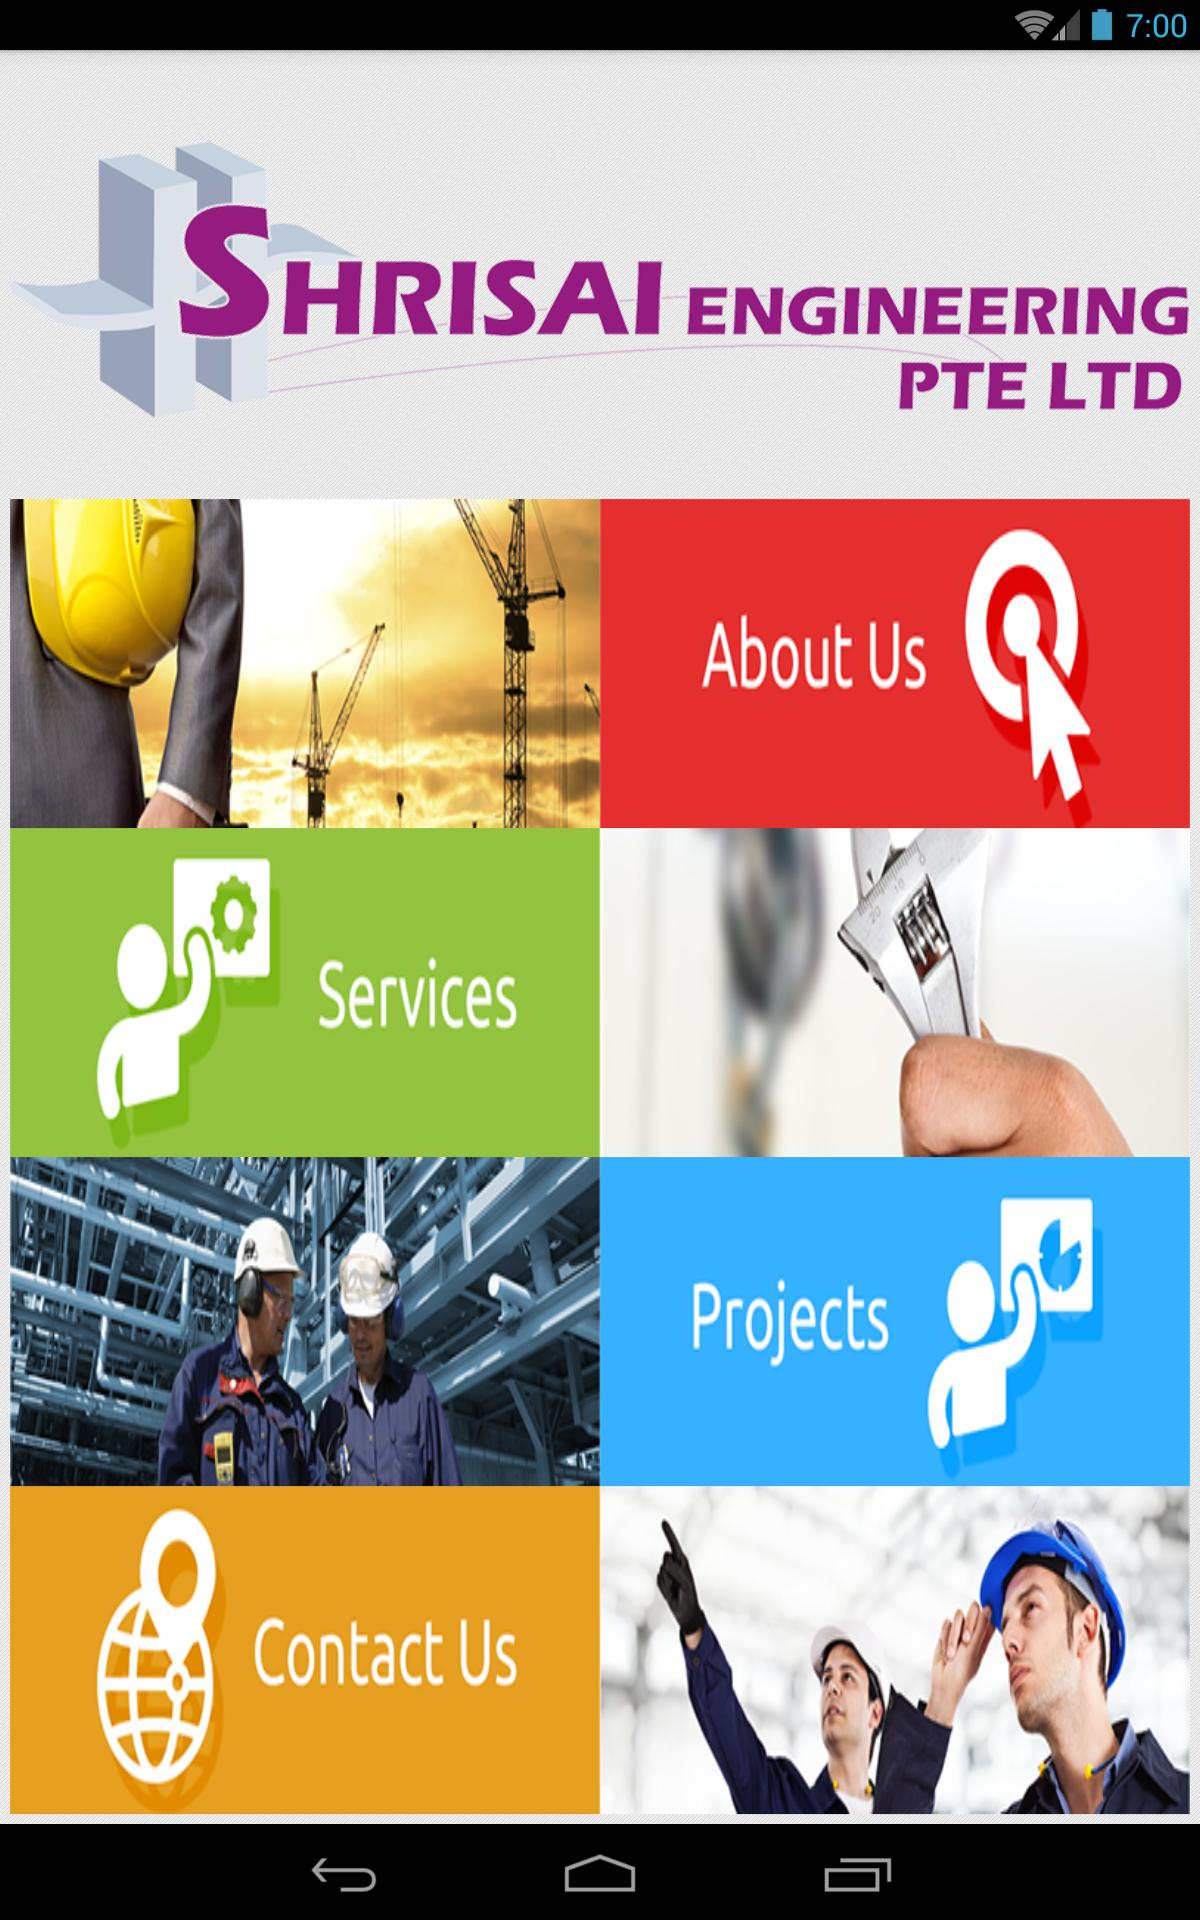 Shrisai Engineering Pte Ltd poster